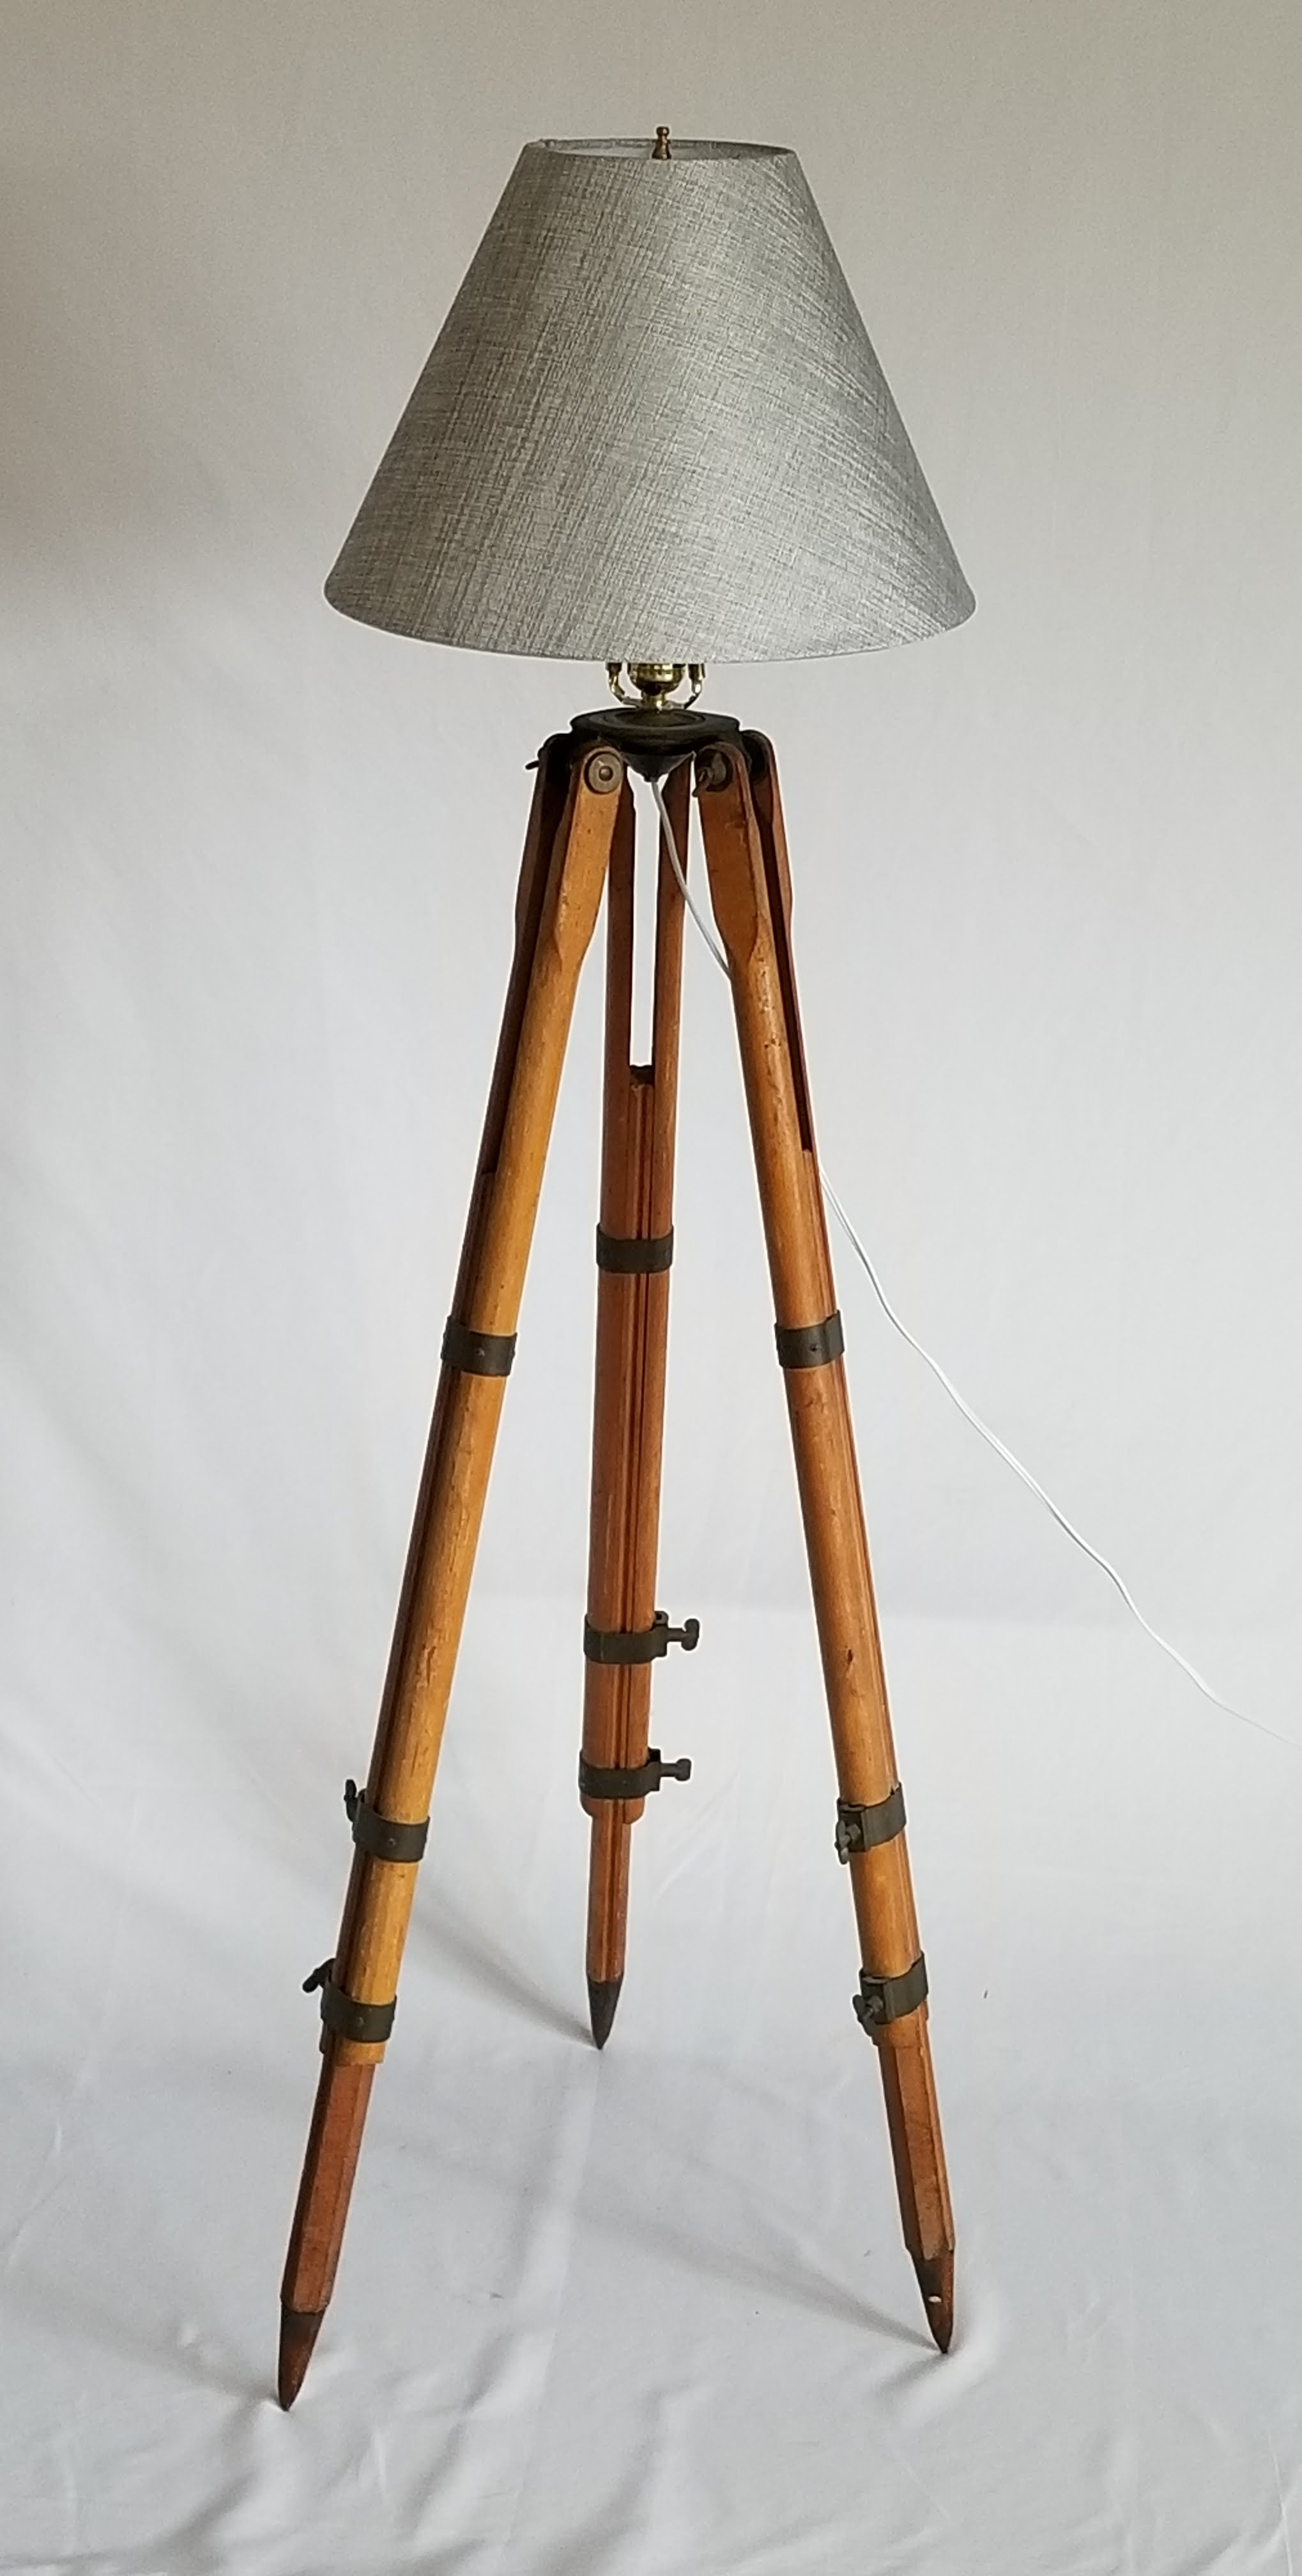 Survey Tripod II